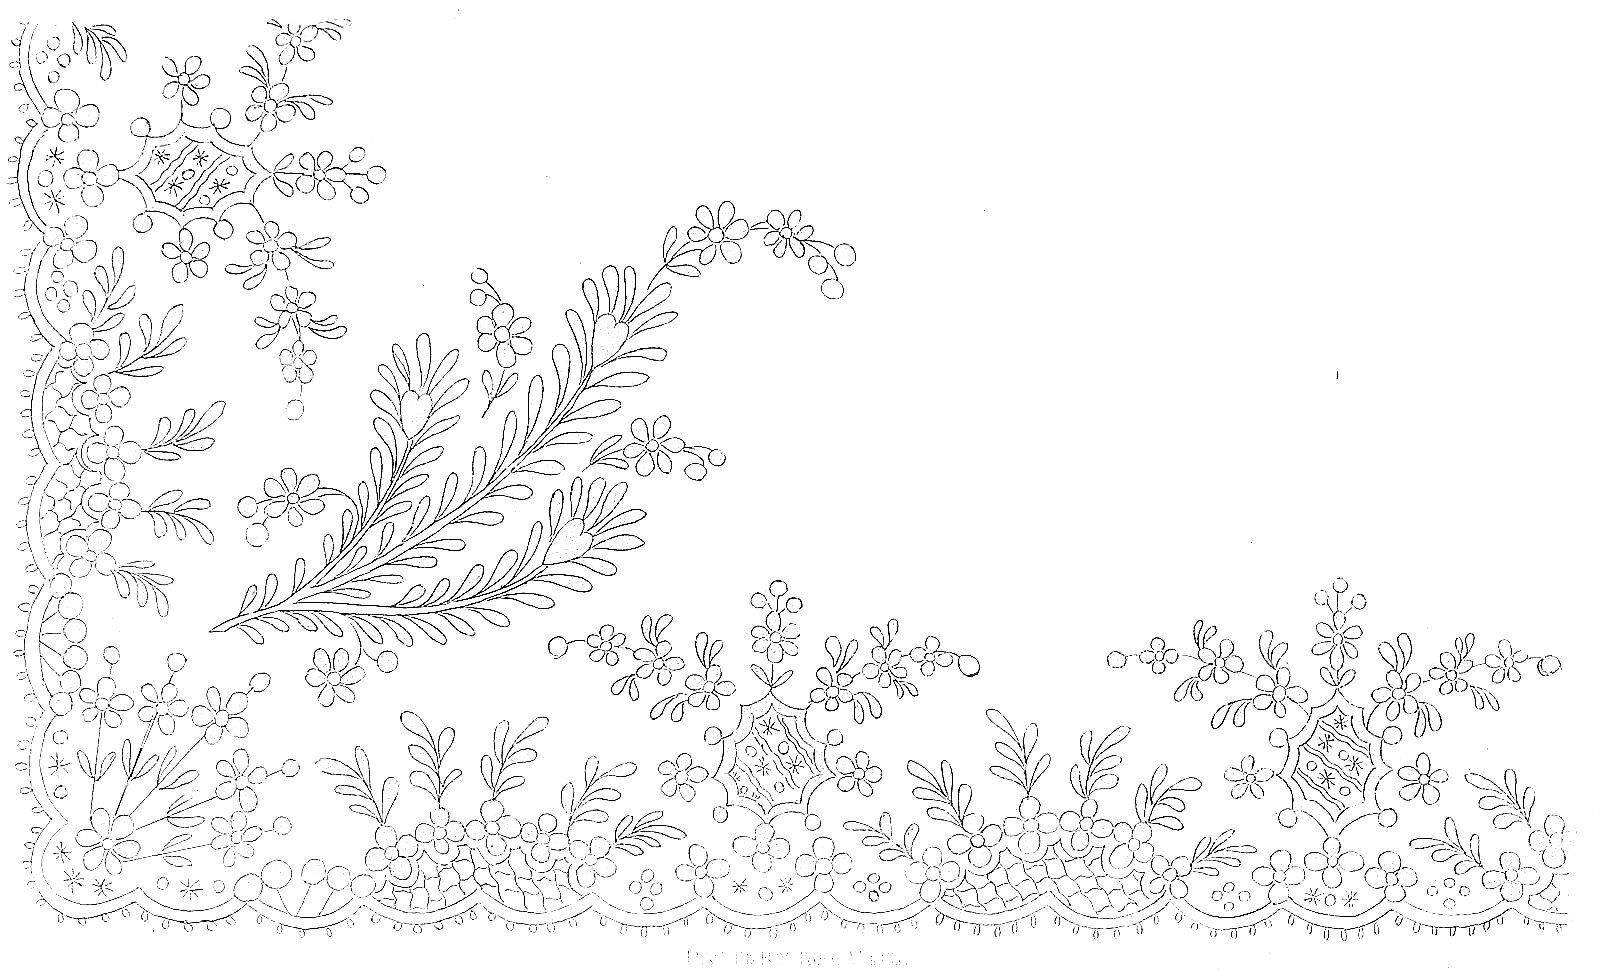 1812 Regency Needlework Pattern 7 July 1812